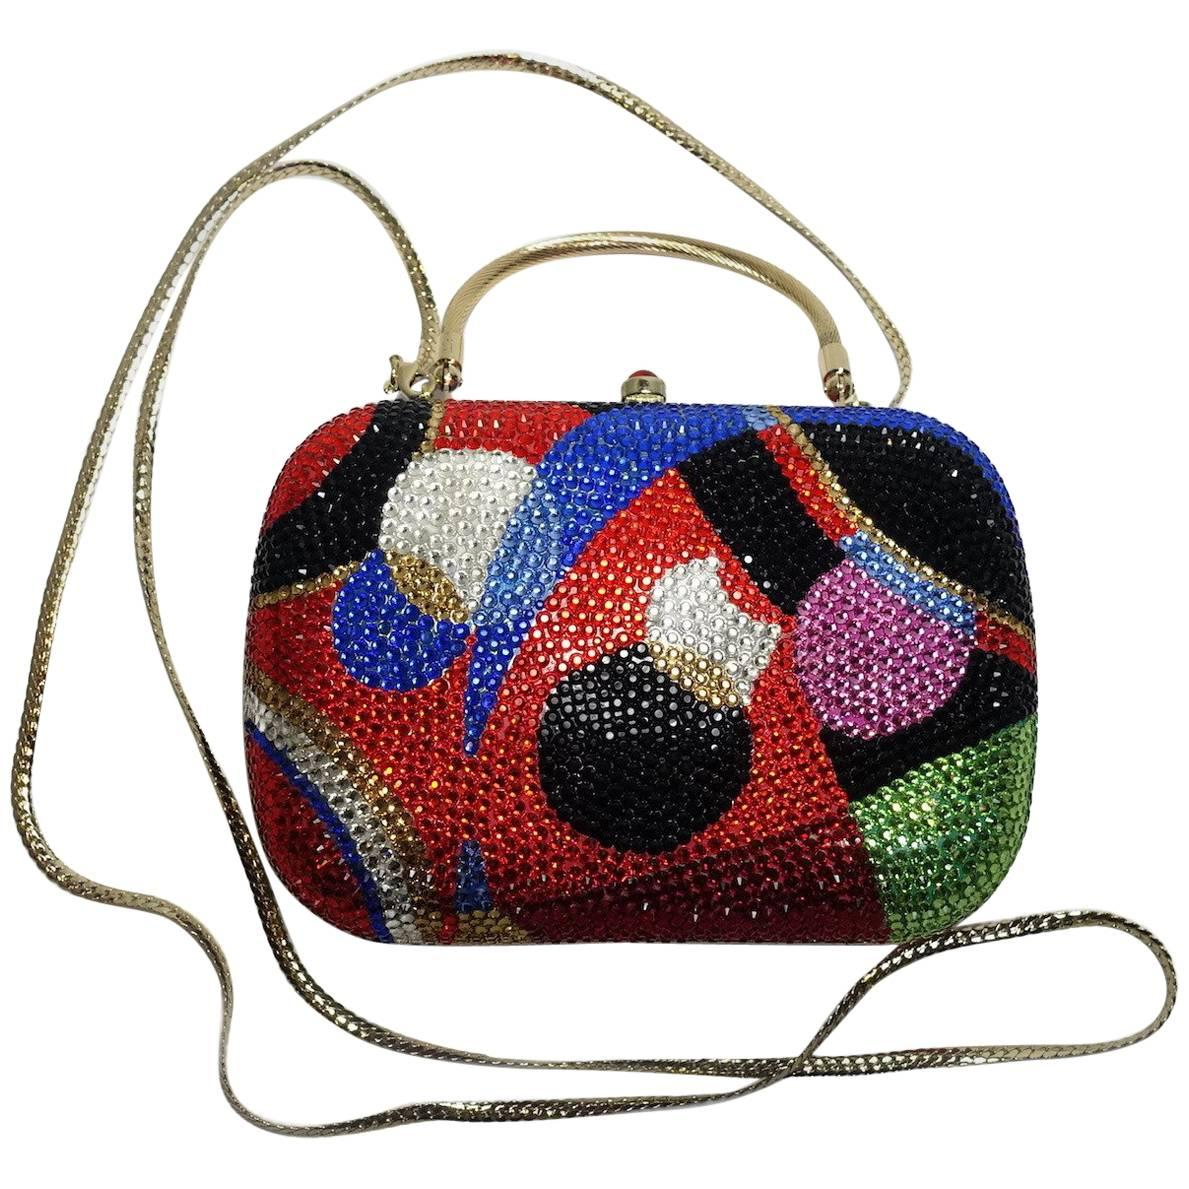 1stdibs Multi-color Minaudiere Evening Bag myE53zdC